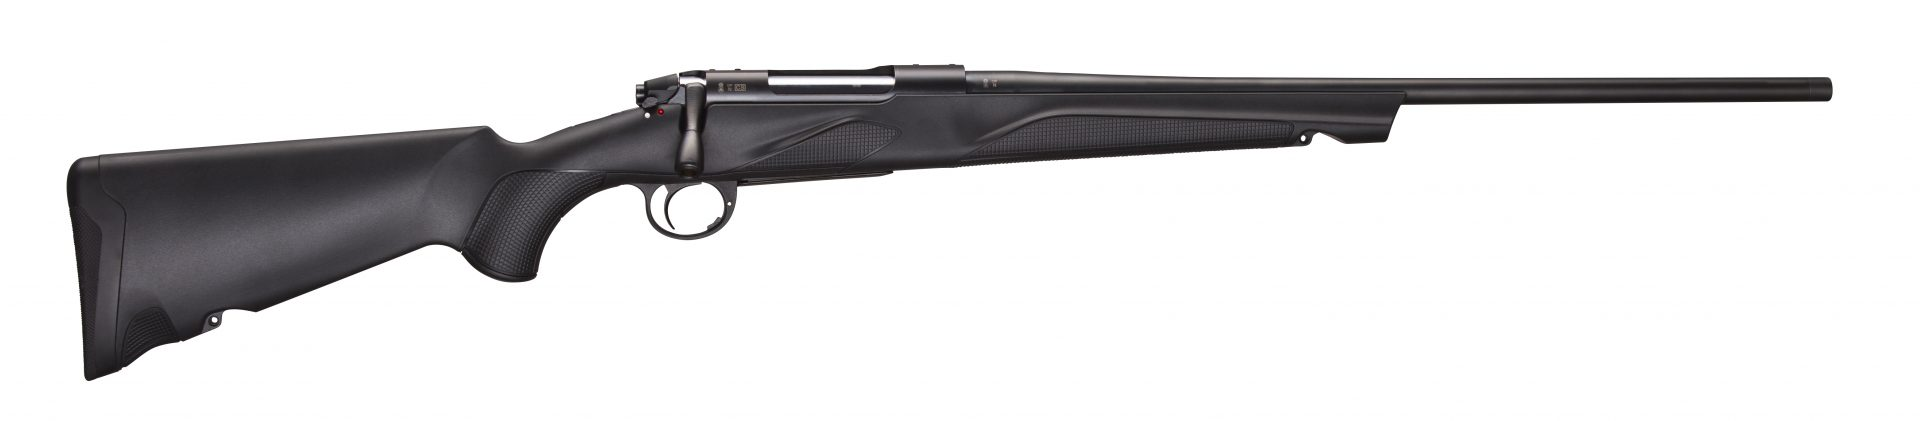 Carabina Horizon Franchi bolt action rifle